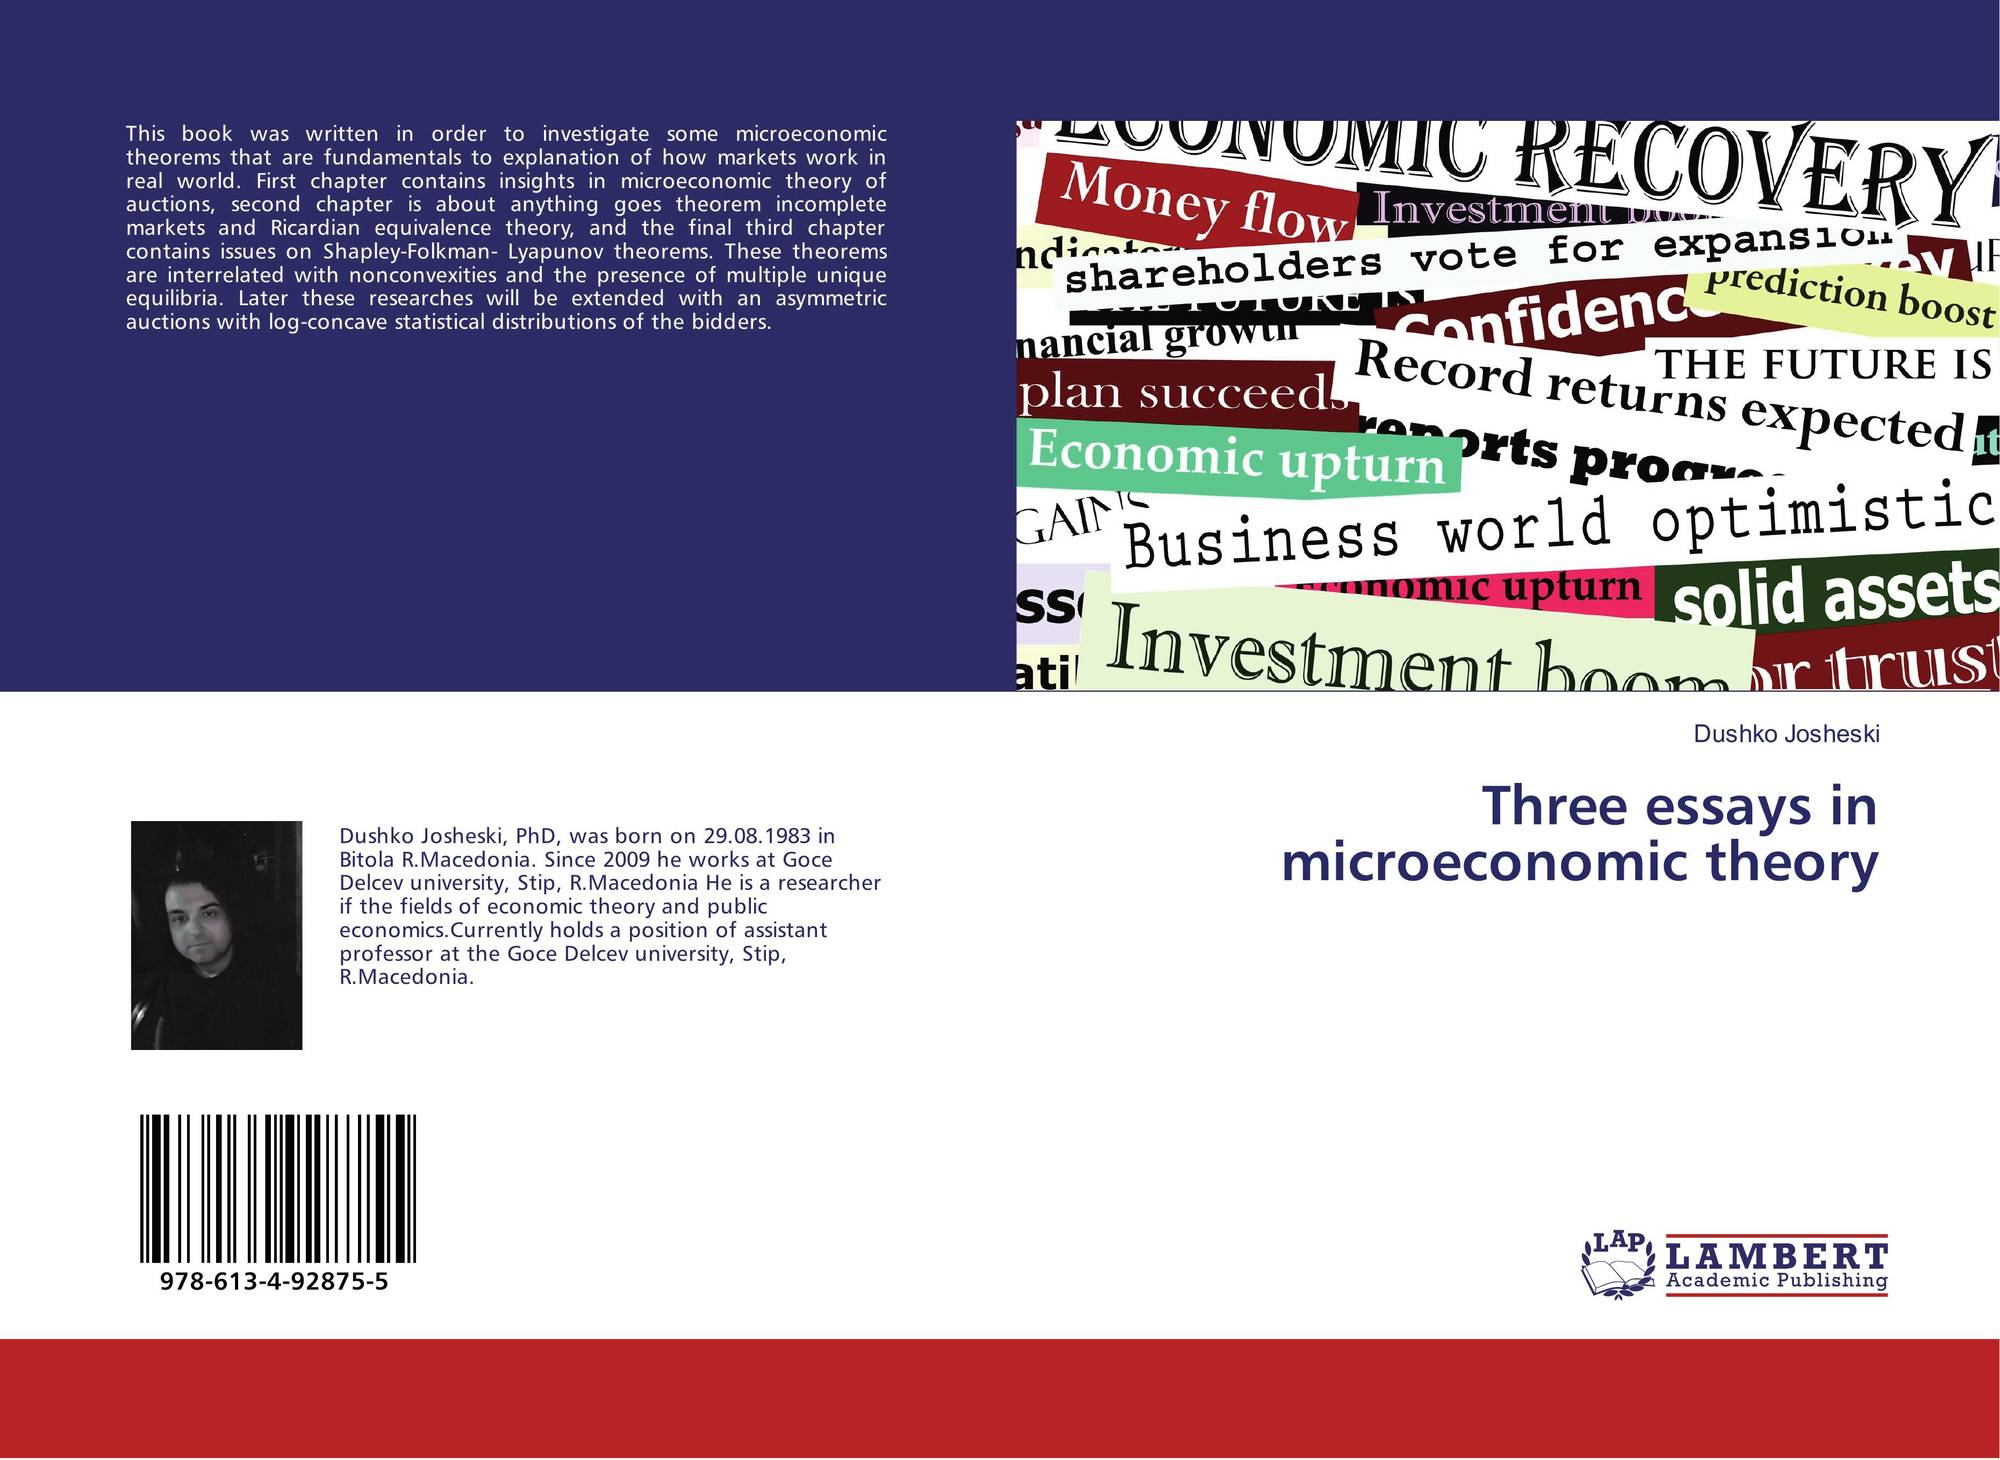 microeconomic reform essay The role of the government in the economy essay the role of the government in the economy essay why is the government concerned about microeconomic reform.